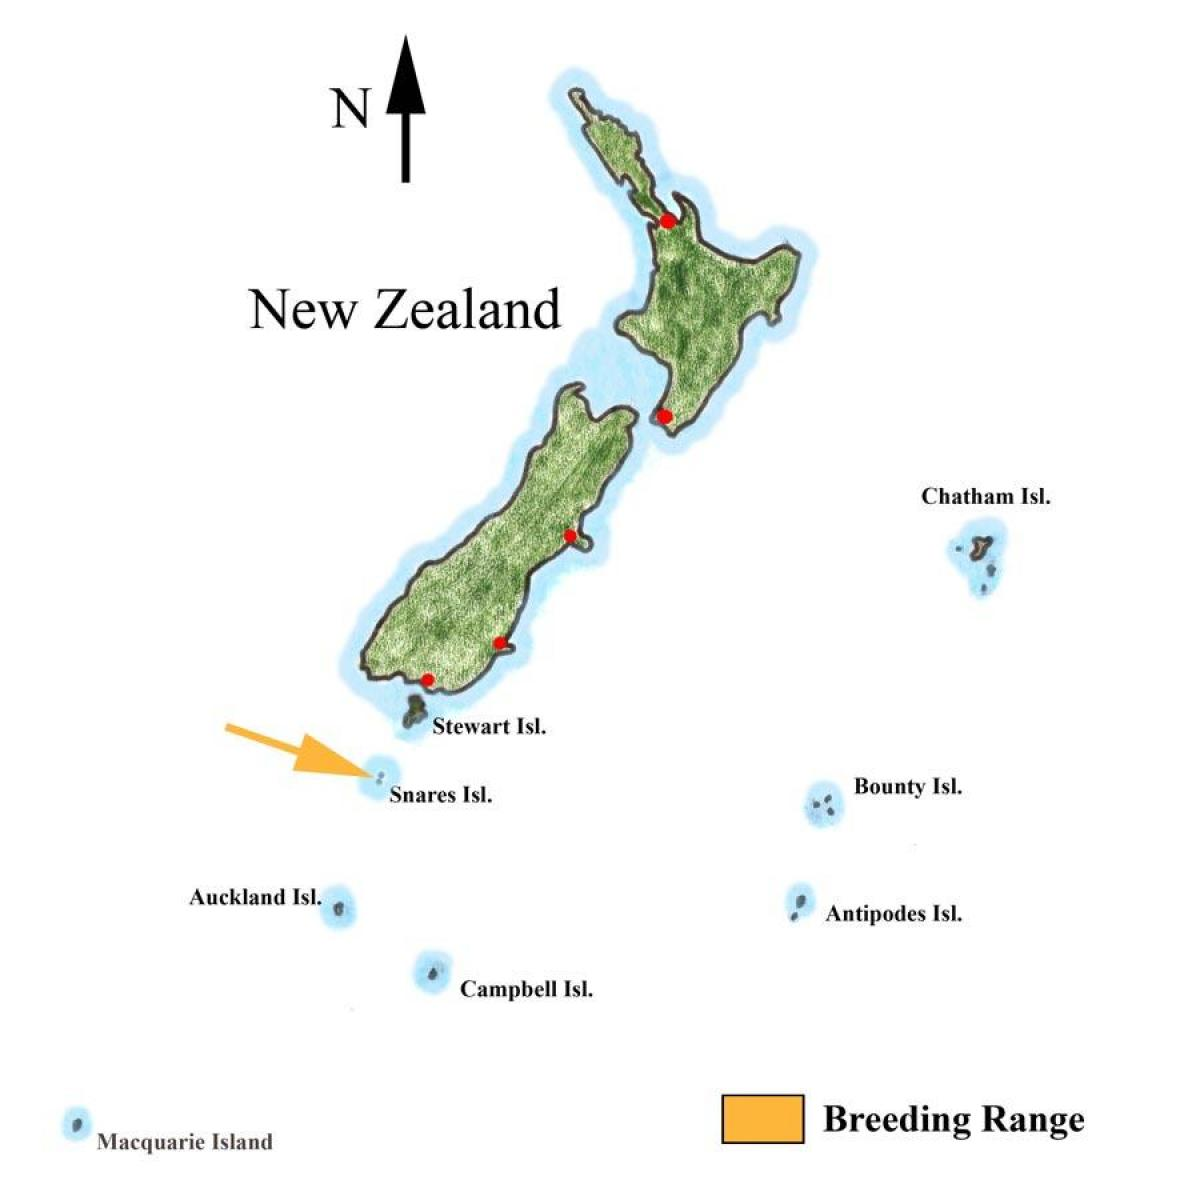 Map Of New Zealand And Surrounding Islands.Map Of New Zealand And Surrounding Islands Map Of New Zealand And